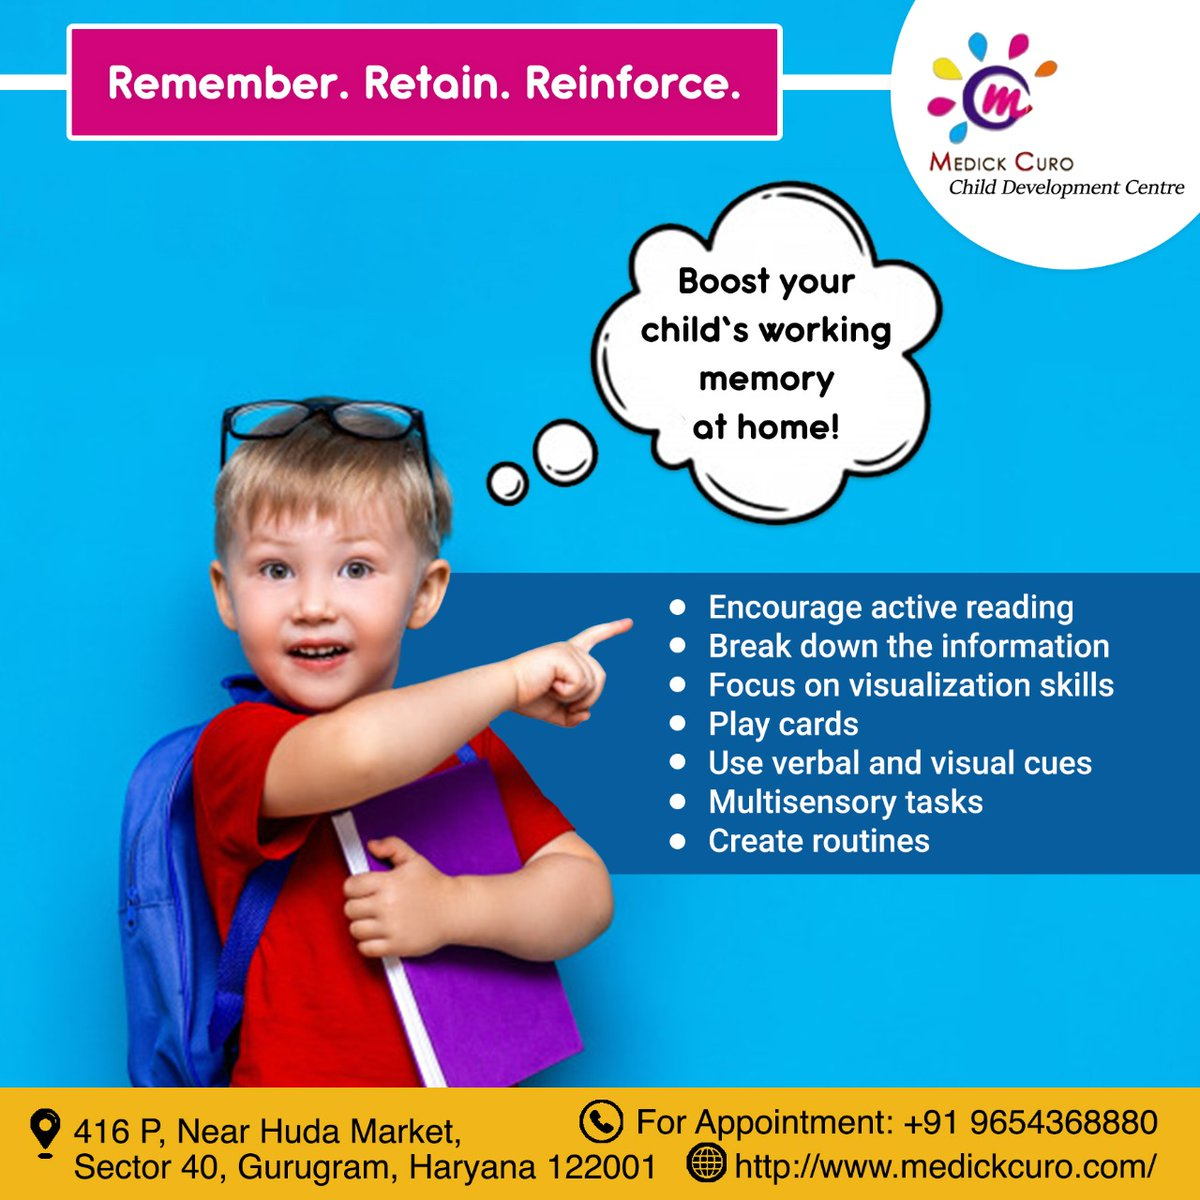 Solidifying the working #memory foundation in your #child.  Working memory is a basic mental skill. It's important for both learning and doing many everyday tasks.  Click here:  http://www.medickcuro.com/   #medickcuro #gurgaon #Gurugram #children #kids #childcare  #ASD #autismpic.twitter.com/e87v5BmKX5